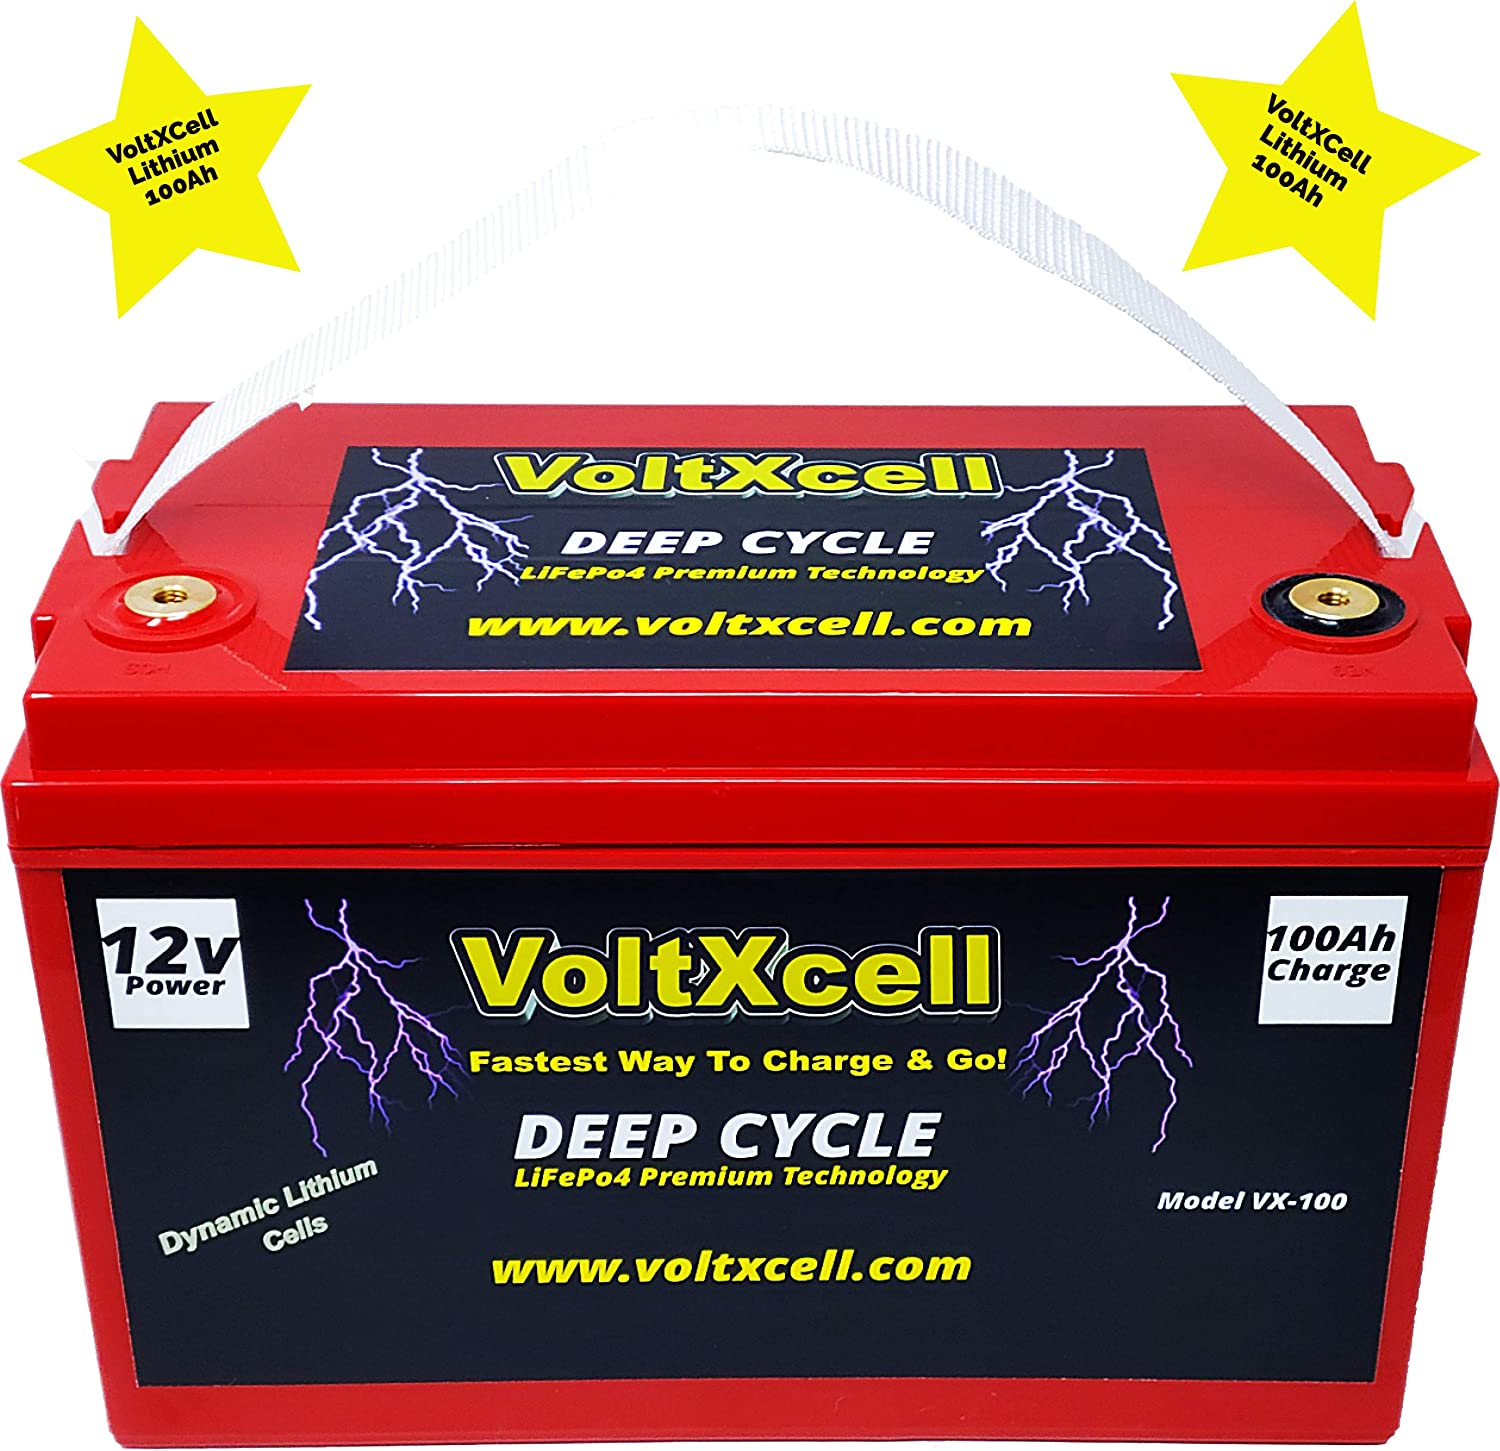 Voltxcell Lithium Battery 100ah 12v Solar Wind 12 Volt LifePo4 BMS Included Off Grid for Storage Rv Home Car Audio Power Fast Charging